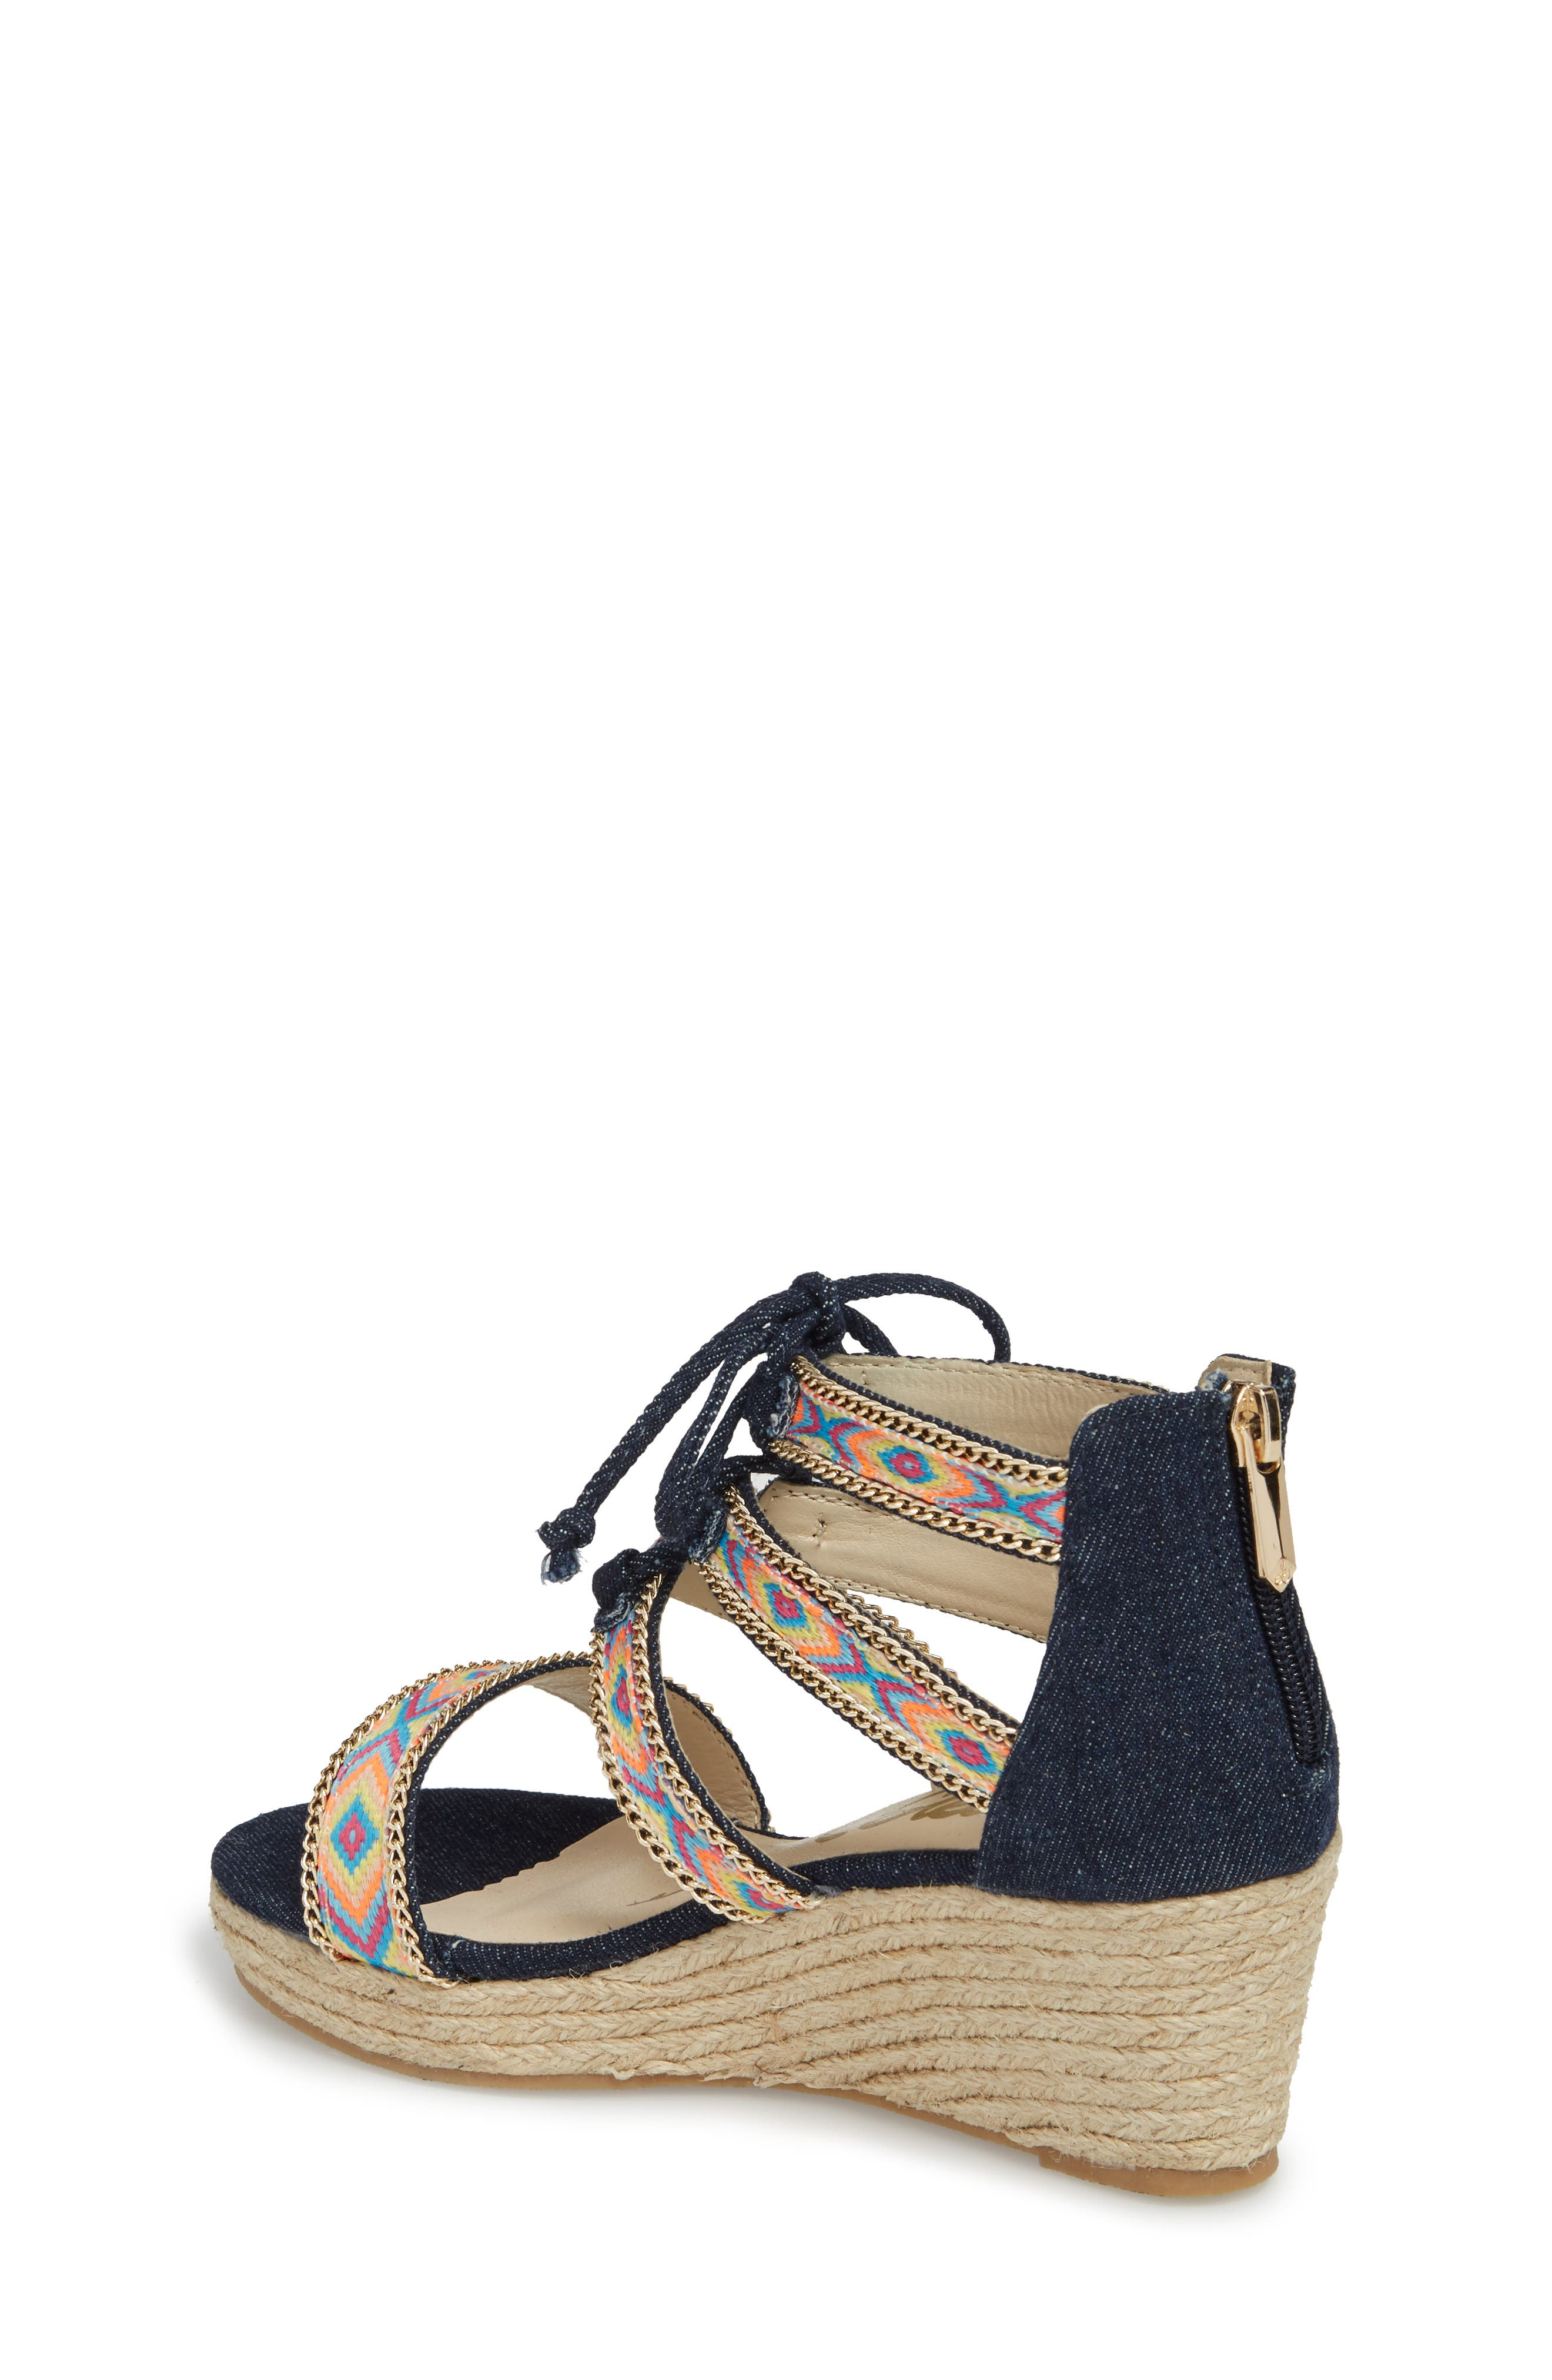 Elsie Dita Wedge Sandal,                             Alternate thumbnail 2, color,                             Dark Blue Fabric